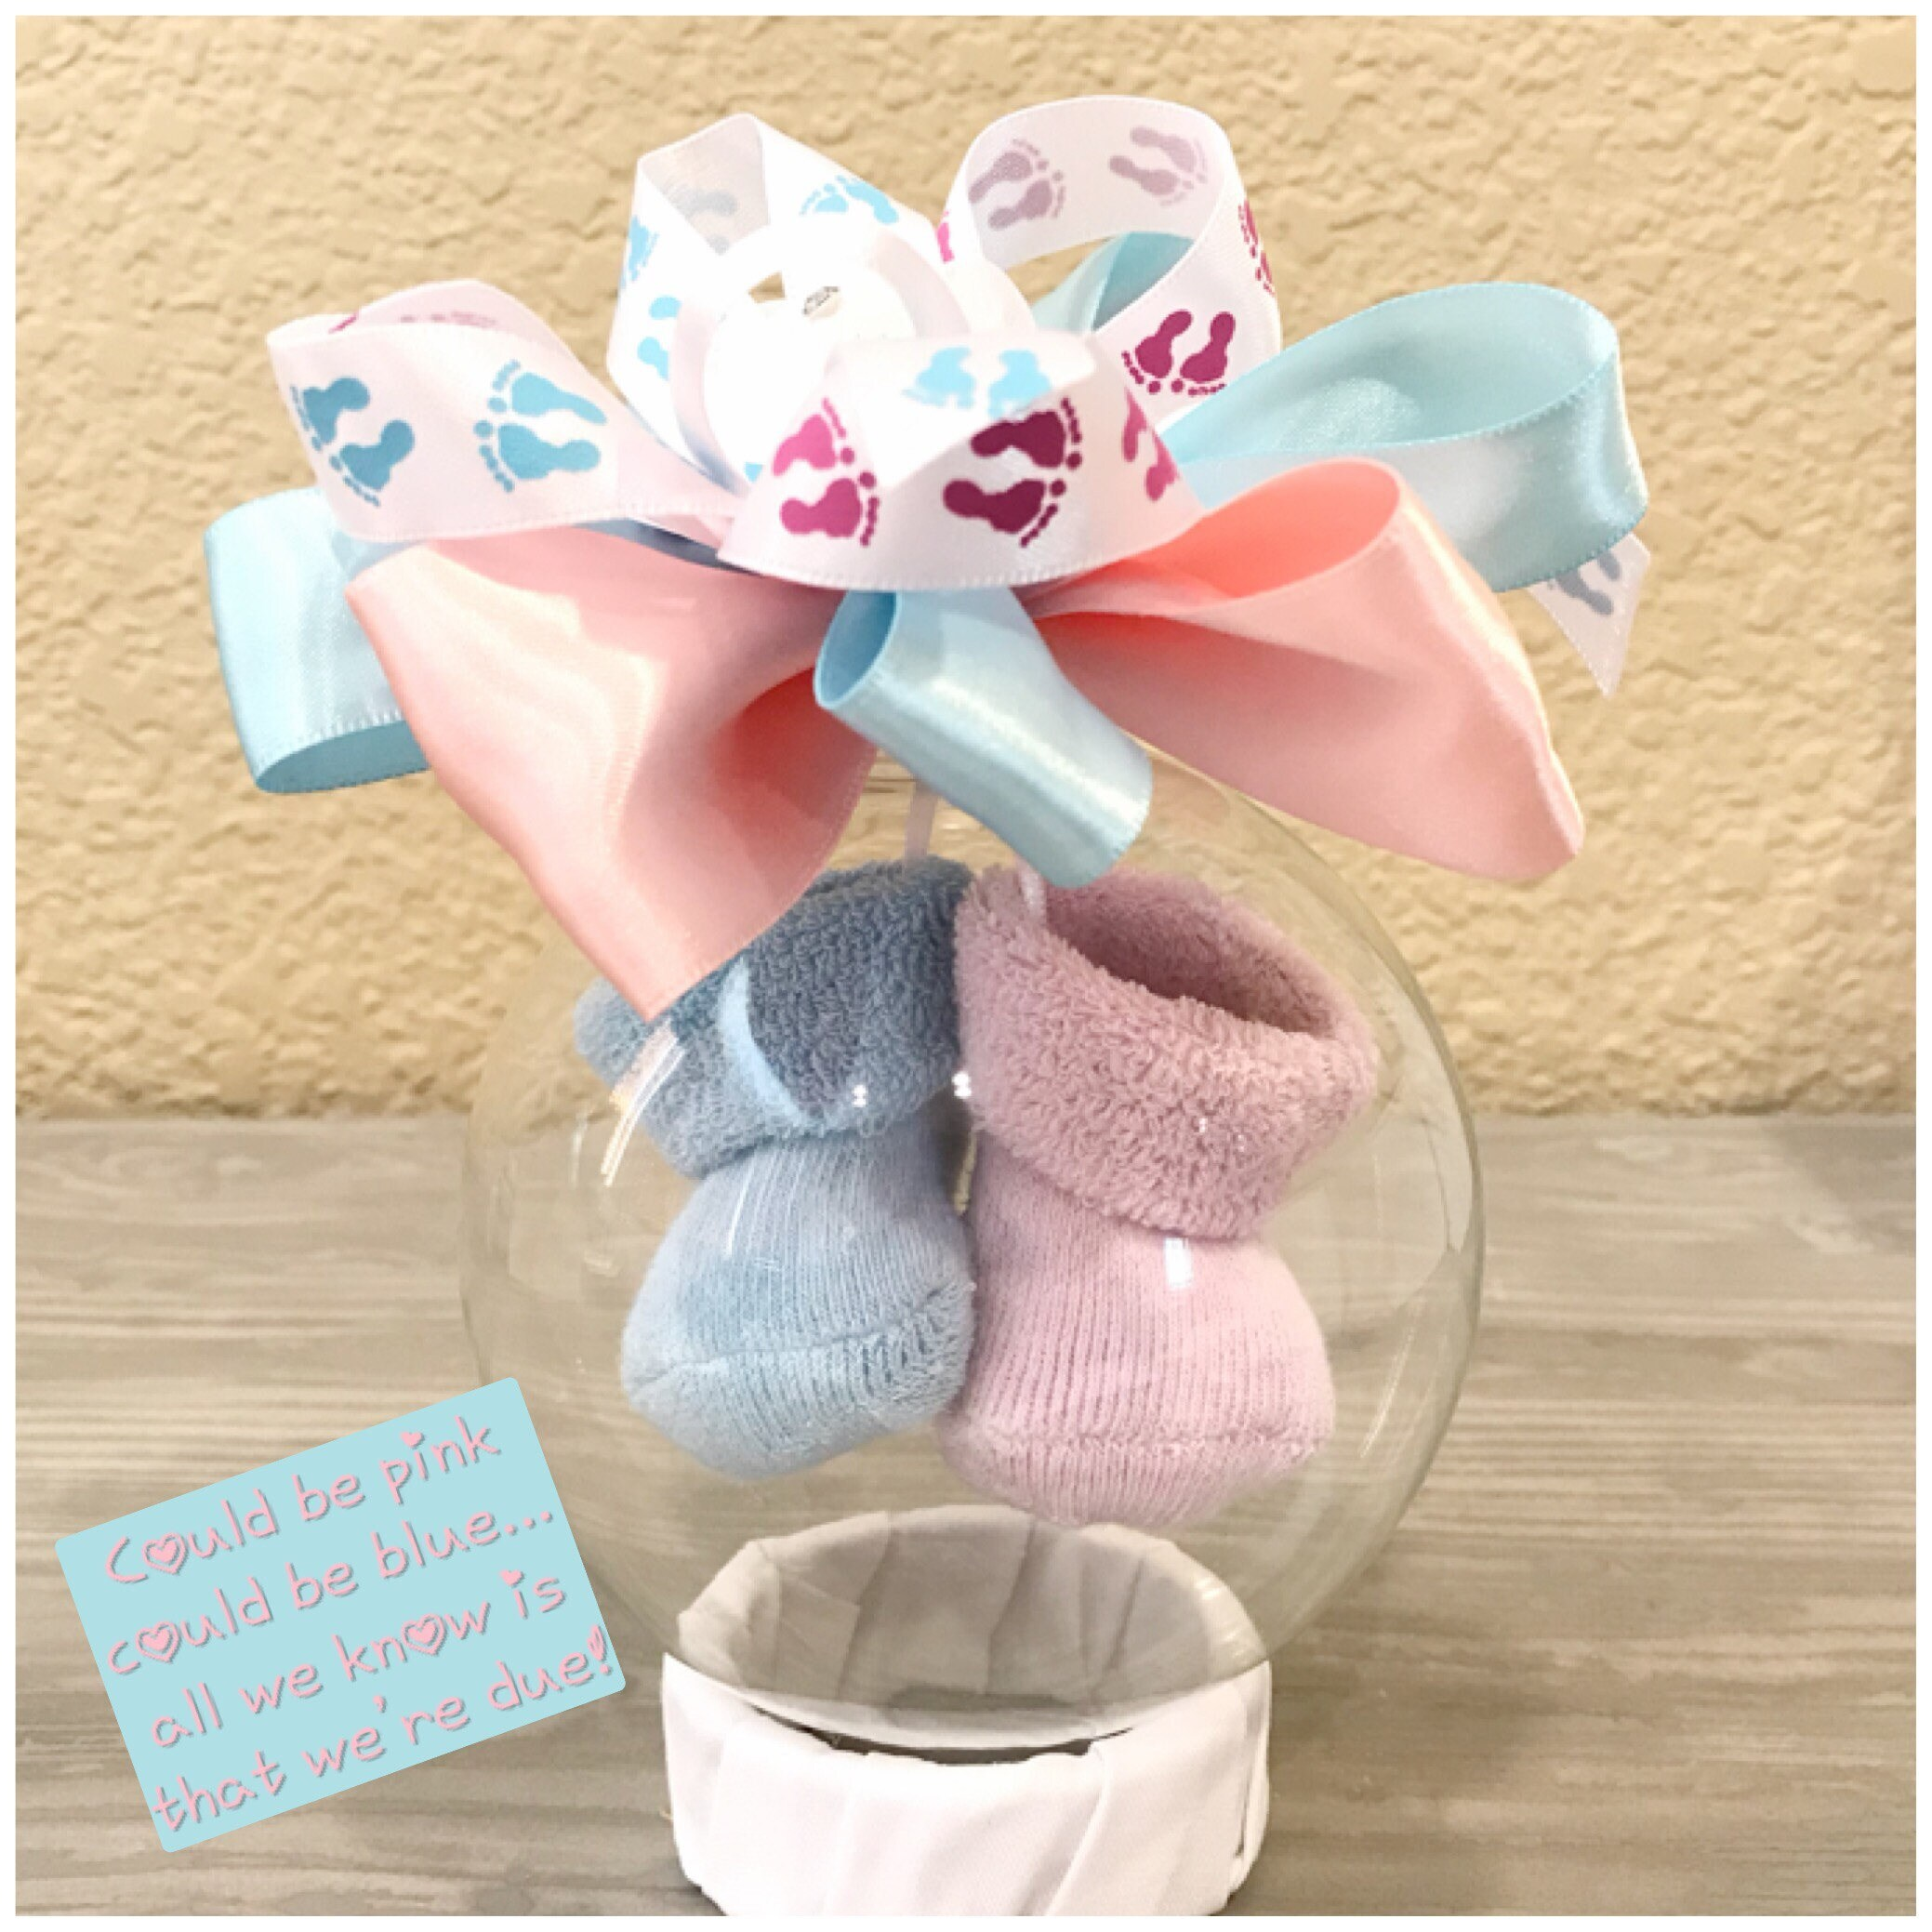 We re Pregnant Announcement for Family and Friends Ornament with